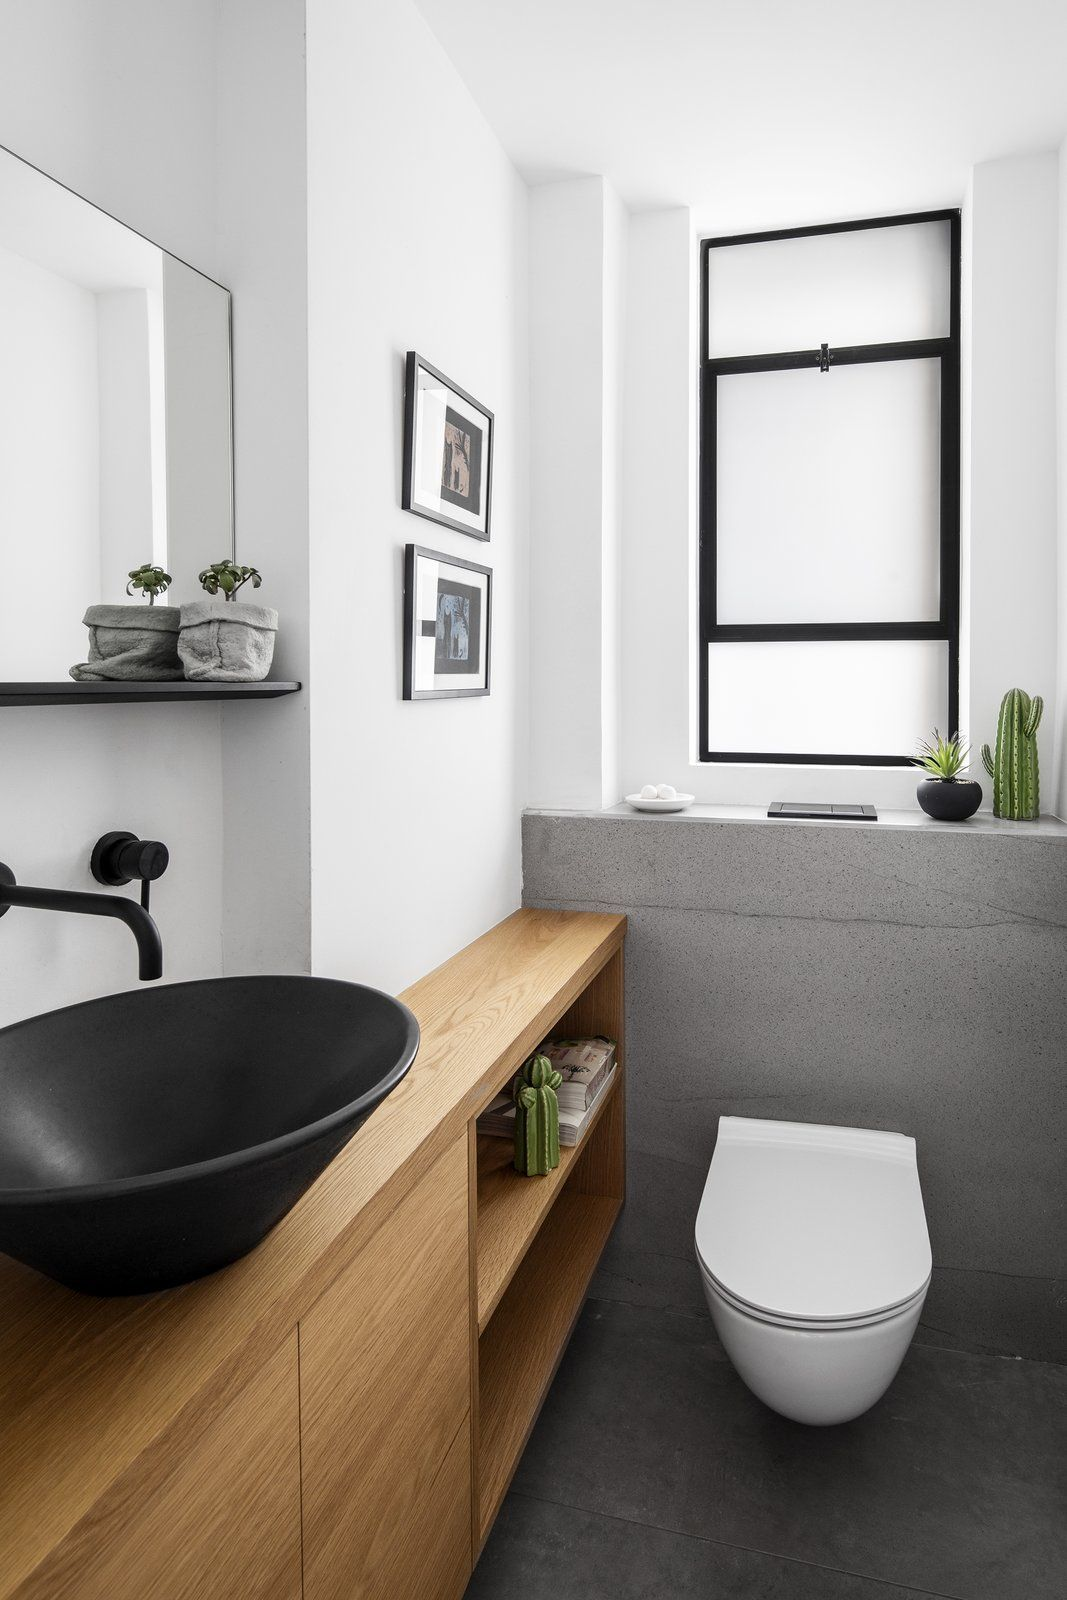 Gästetoilette Modern Mg House By Maya Sheinberger In 2021 | Small Toilet Room, Luxury Bathroom, Bathroom Interior Design